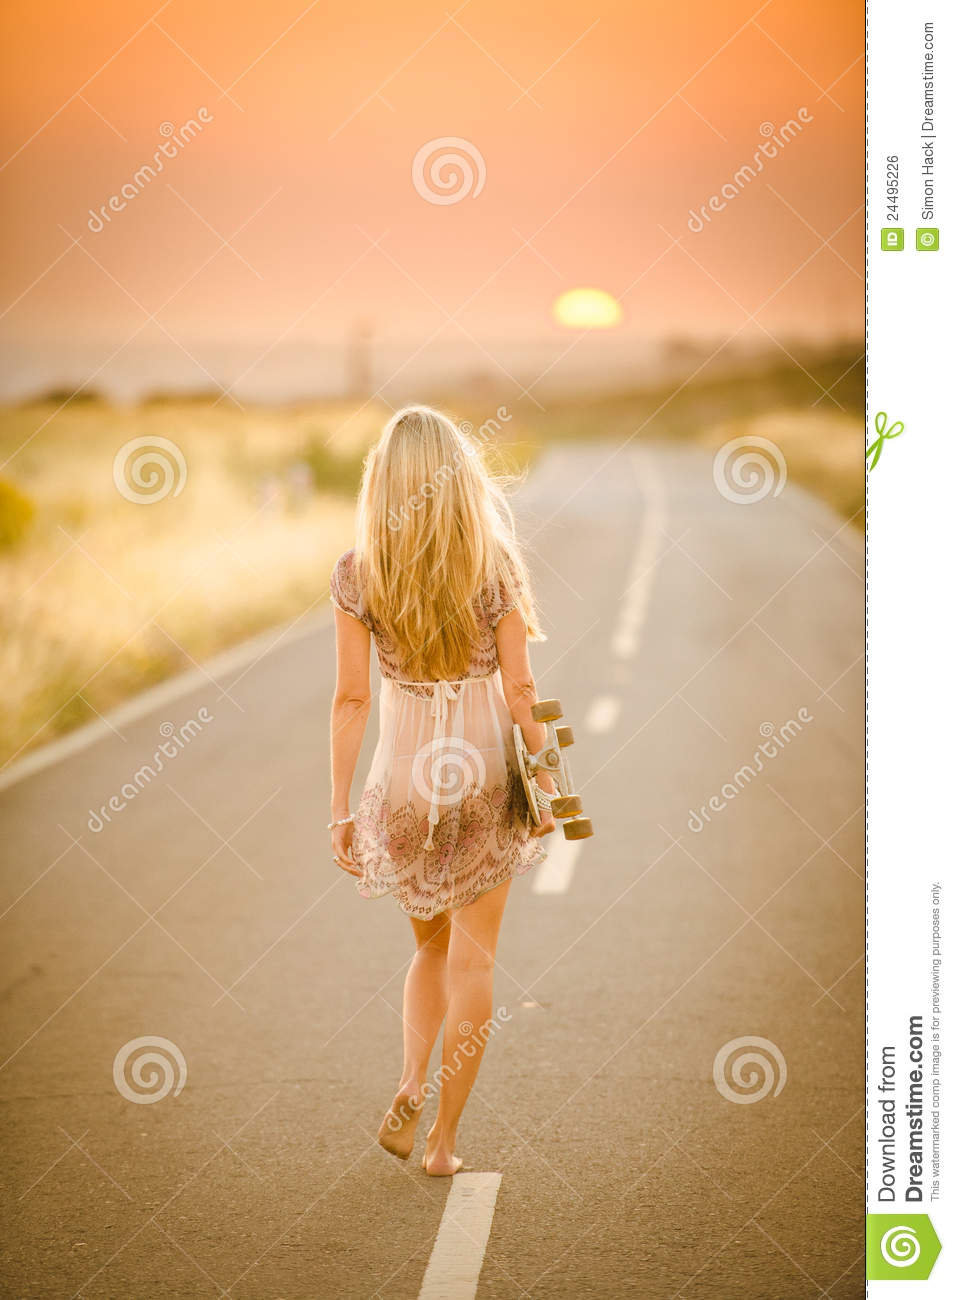 Girl Walking With Her Skateboard Royalty Free Stock Image - Image ...